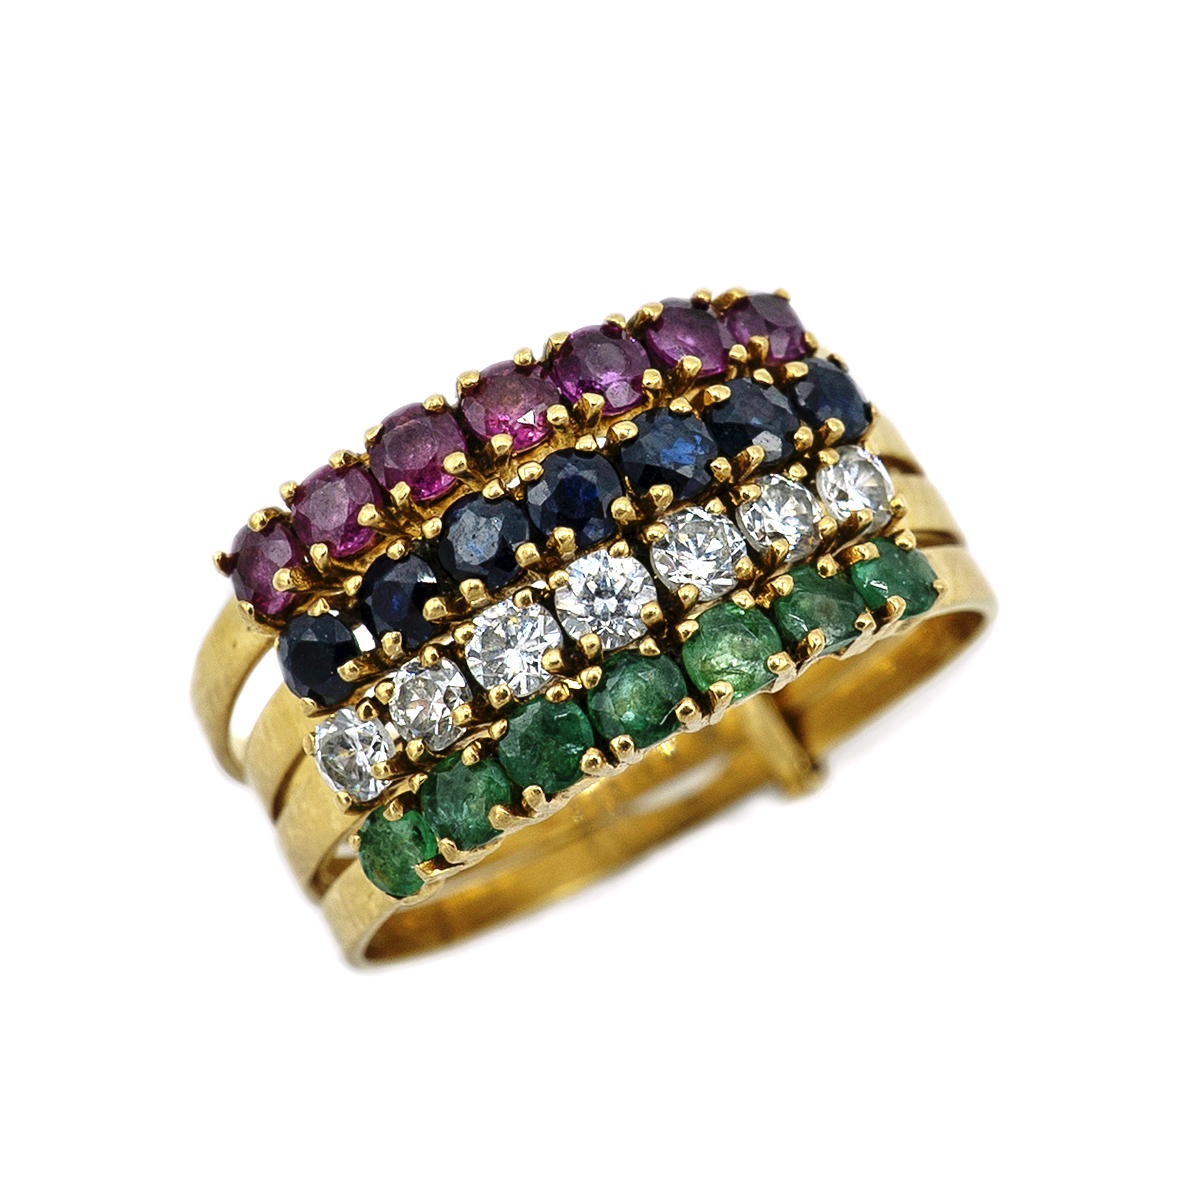 Four Half-alliances Of Brilliants, Rubies, Sapphires And Emeralds.